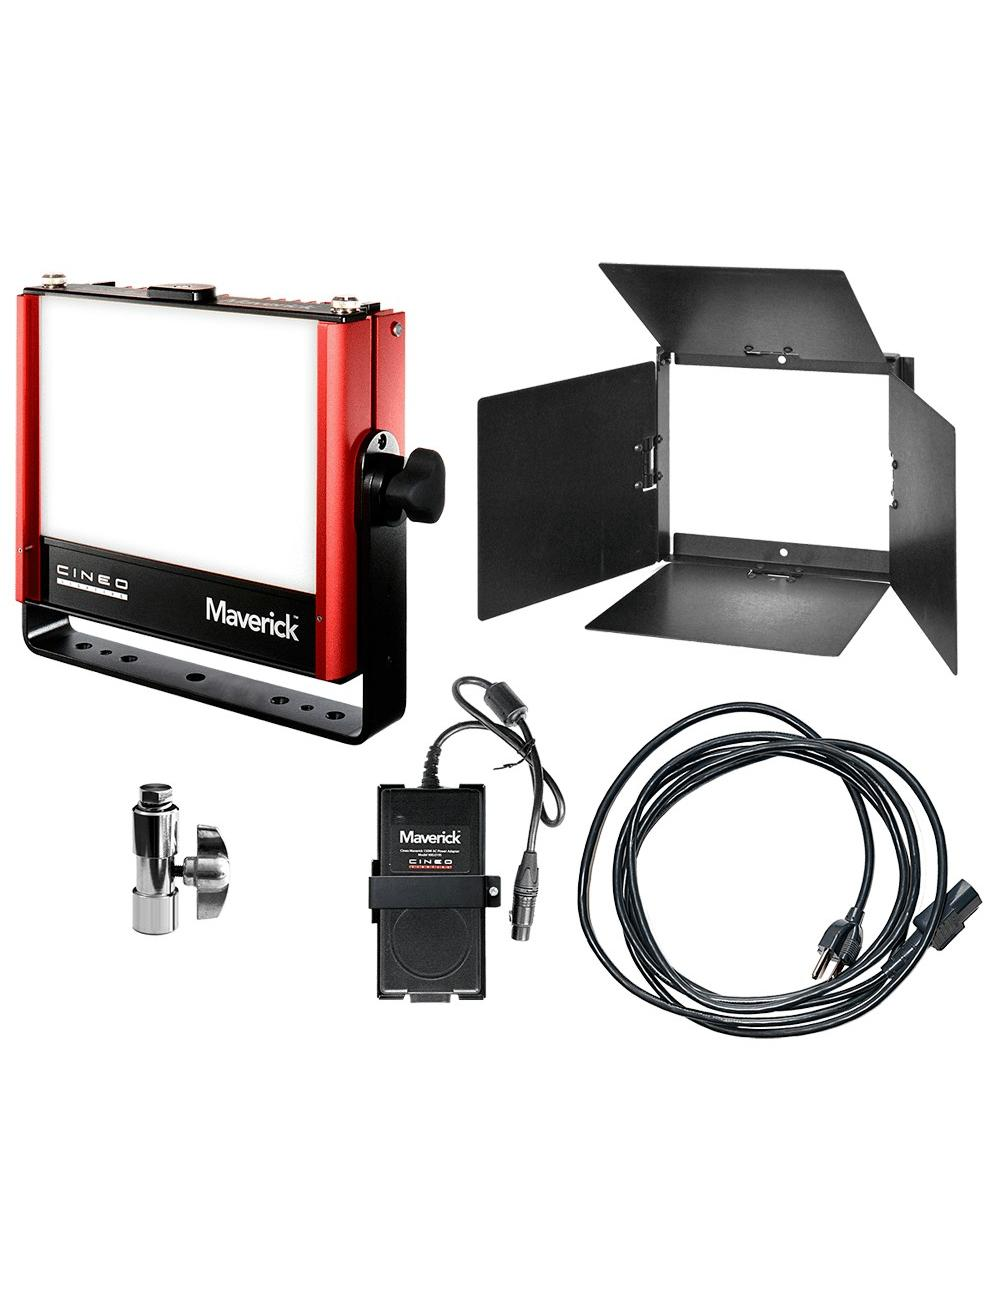 CINEO Maverick3 hi-output Studio Kit